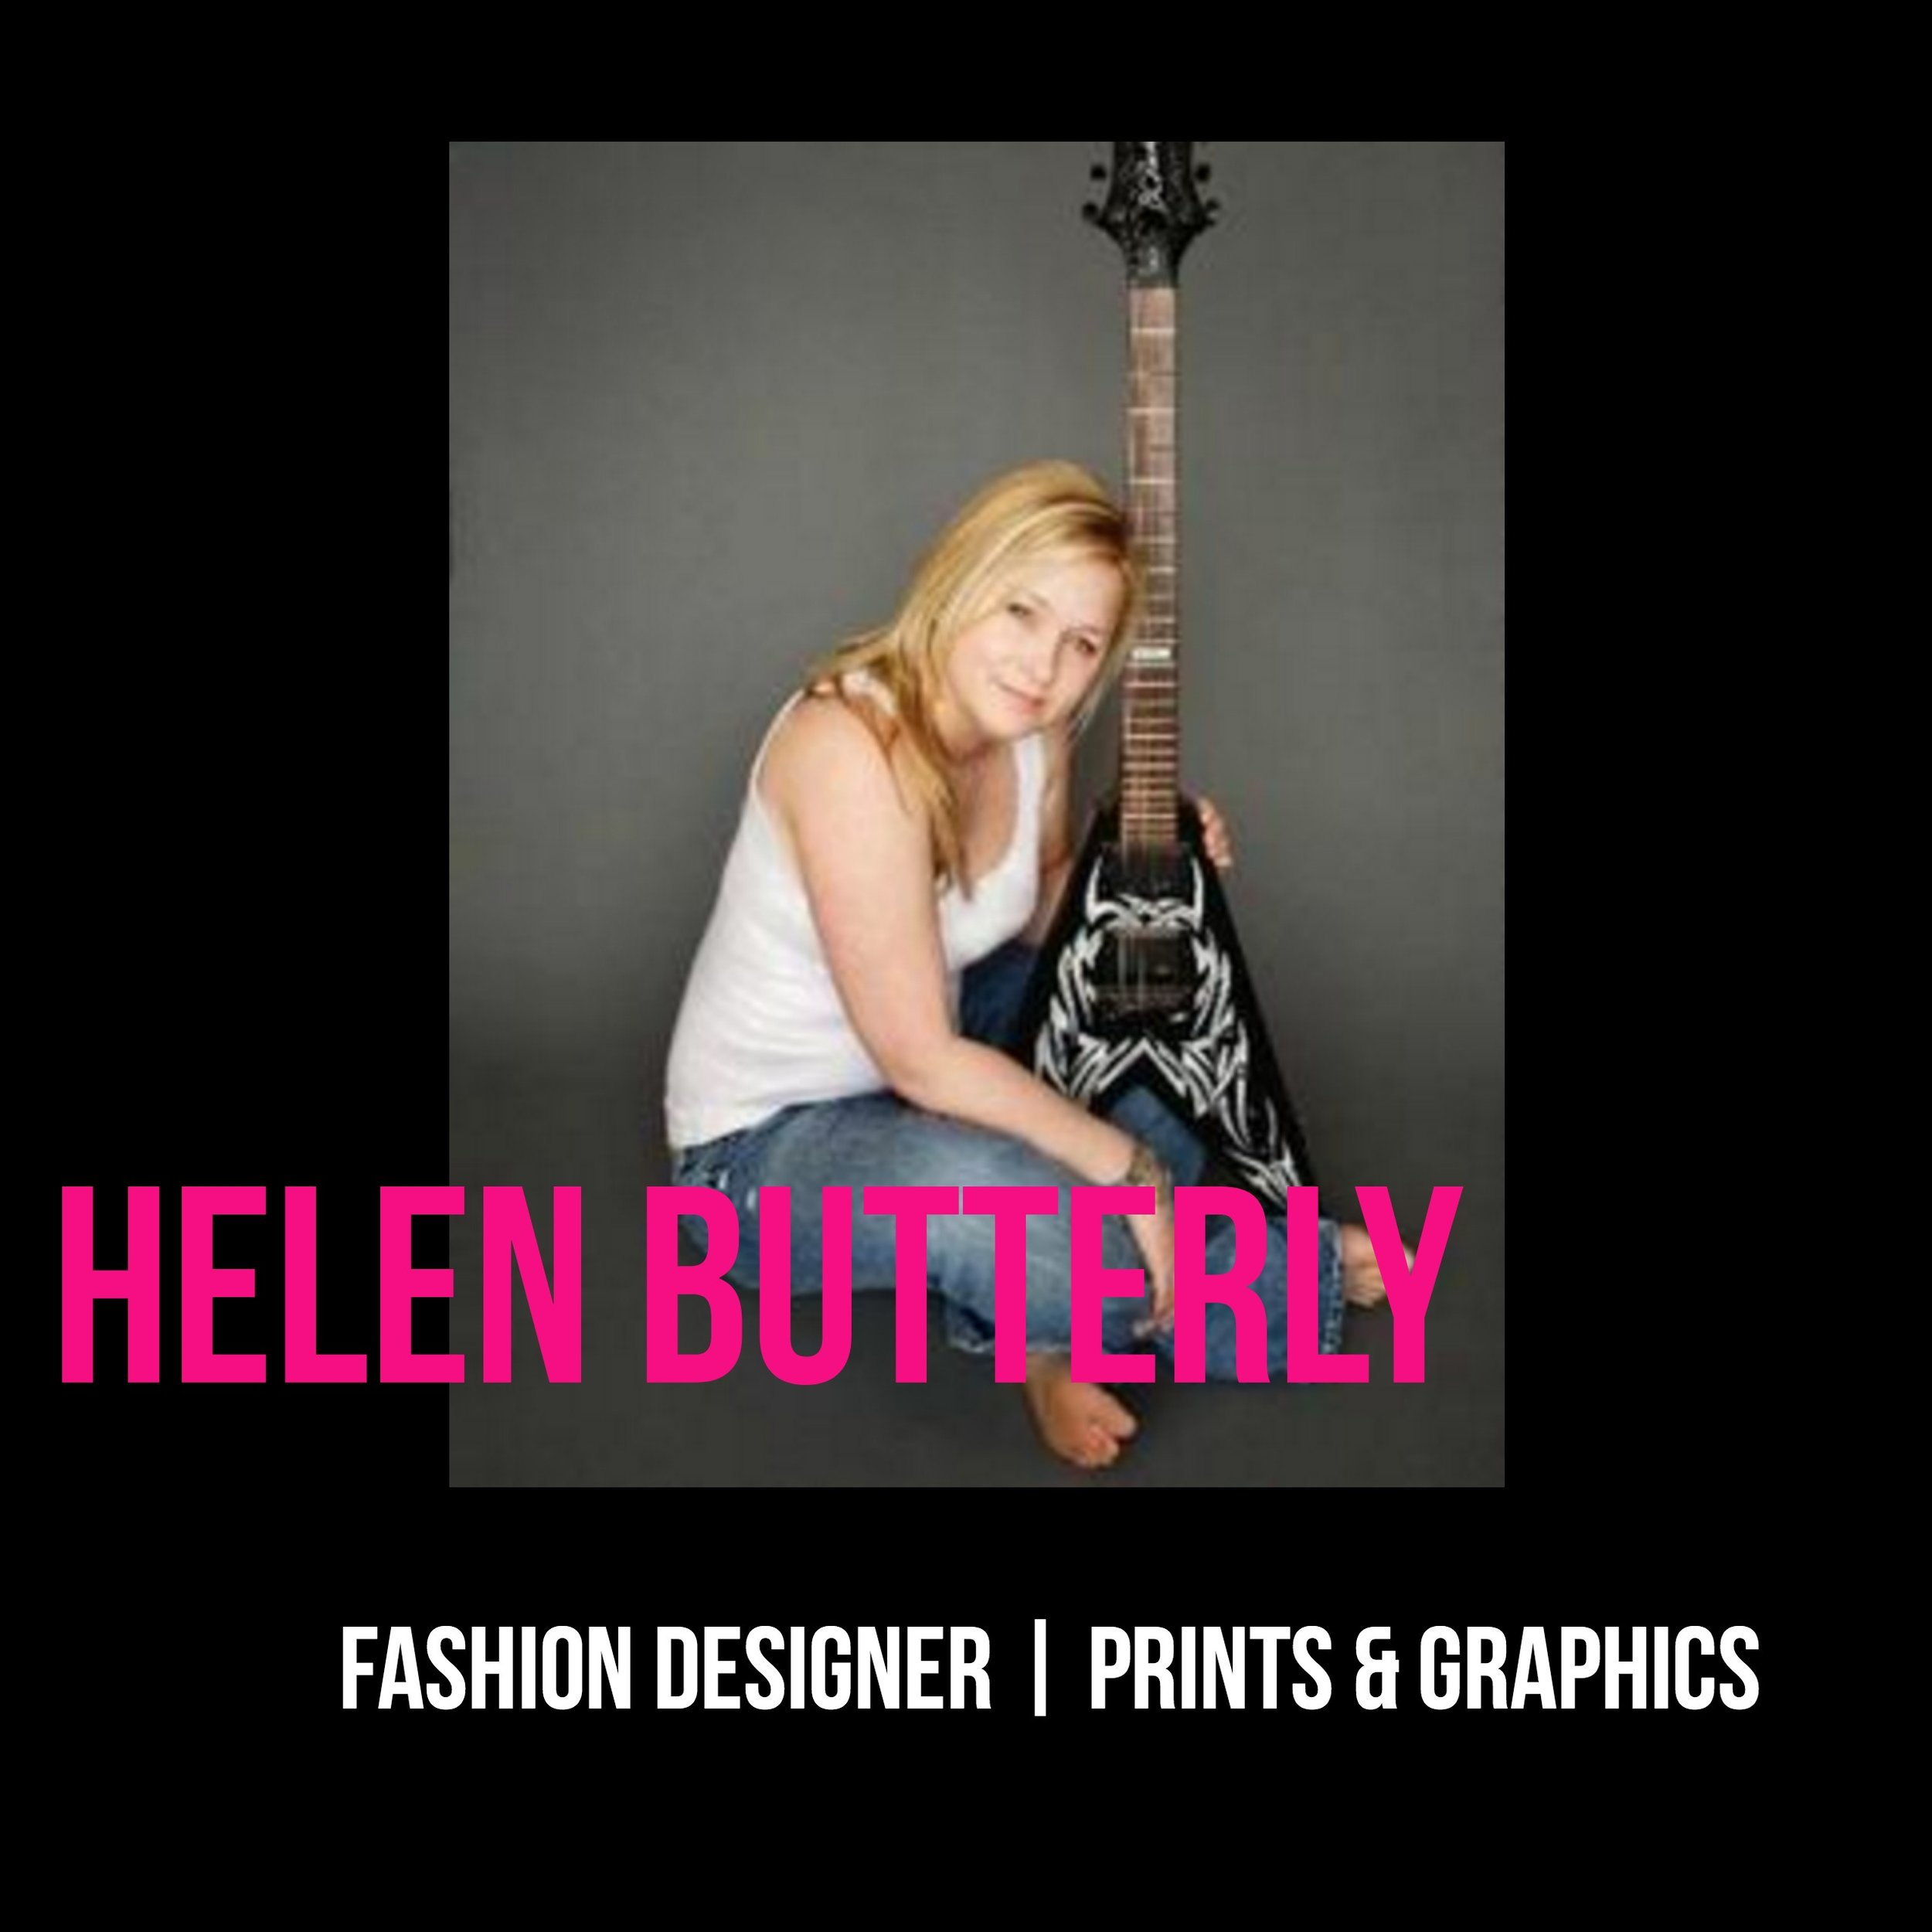 THE JILLS OF ALL TRADES™ Helen Butterly Fashion Designer Prints & Graphics